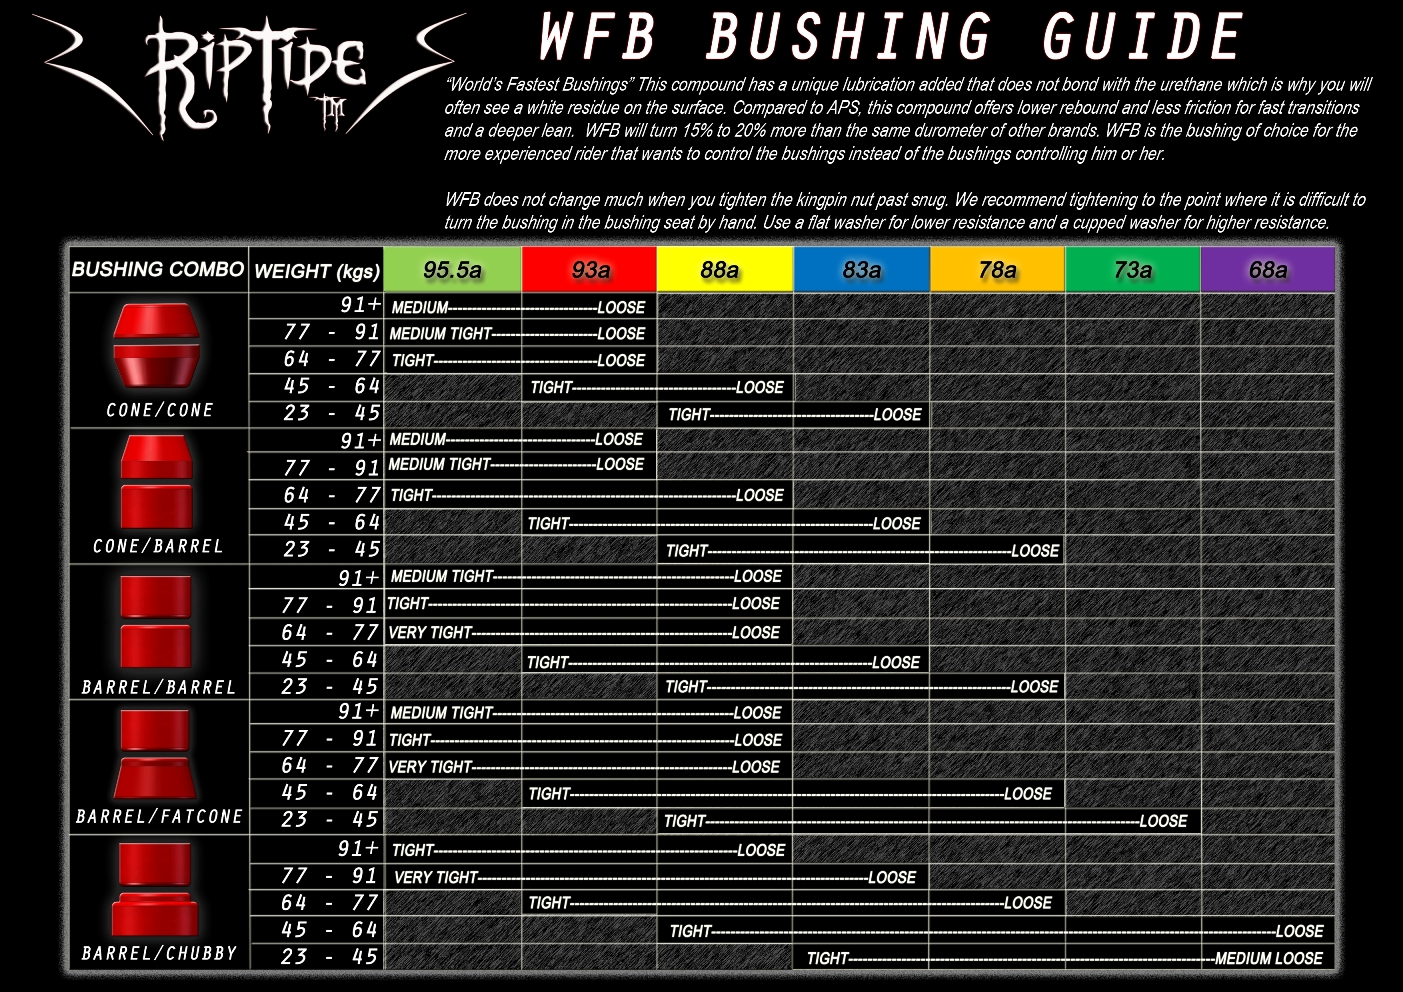 riptide-bushings-wfb-bushing-weight-chart-in-kgs-i.jpg